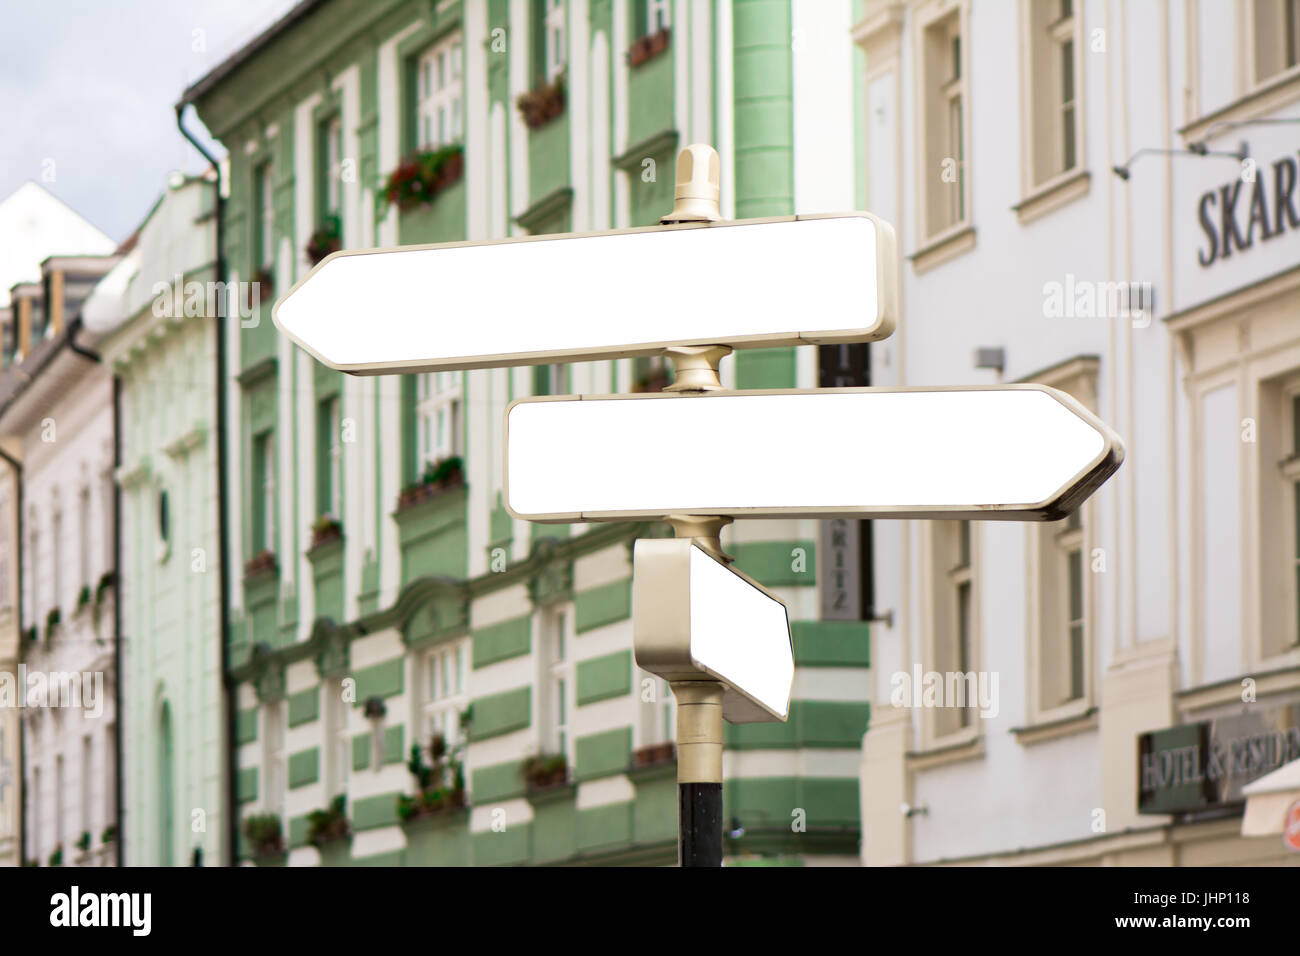 Blank guide post in the city, behind, building with classical architecture. 3 empty rectangular posters - Stock Image